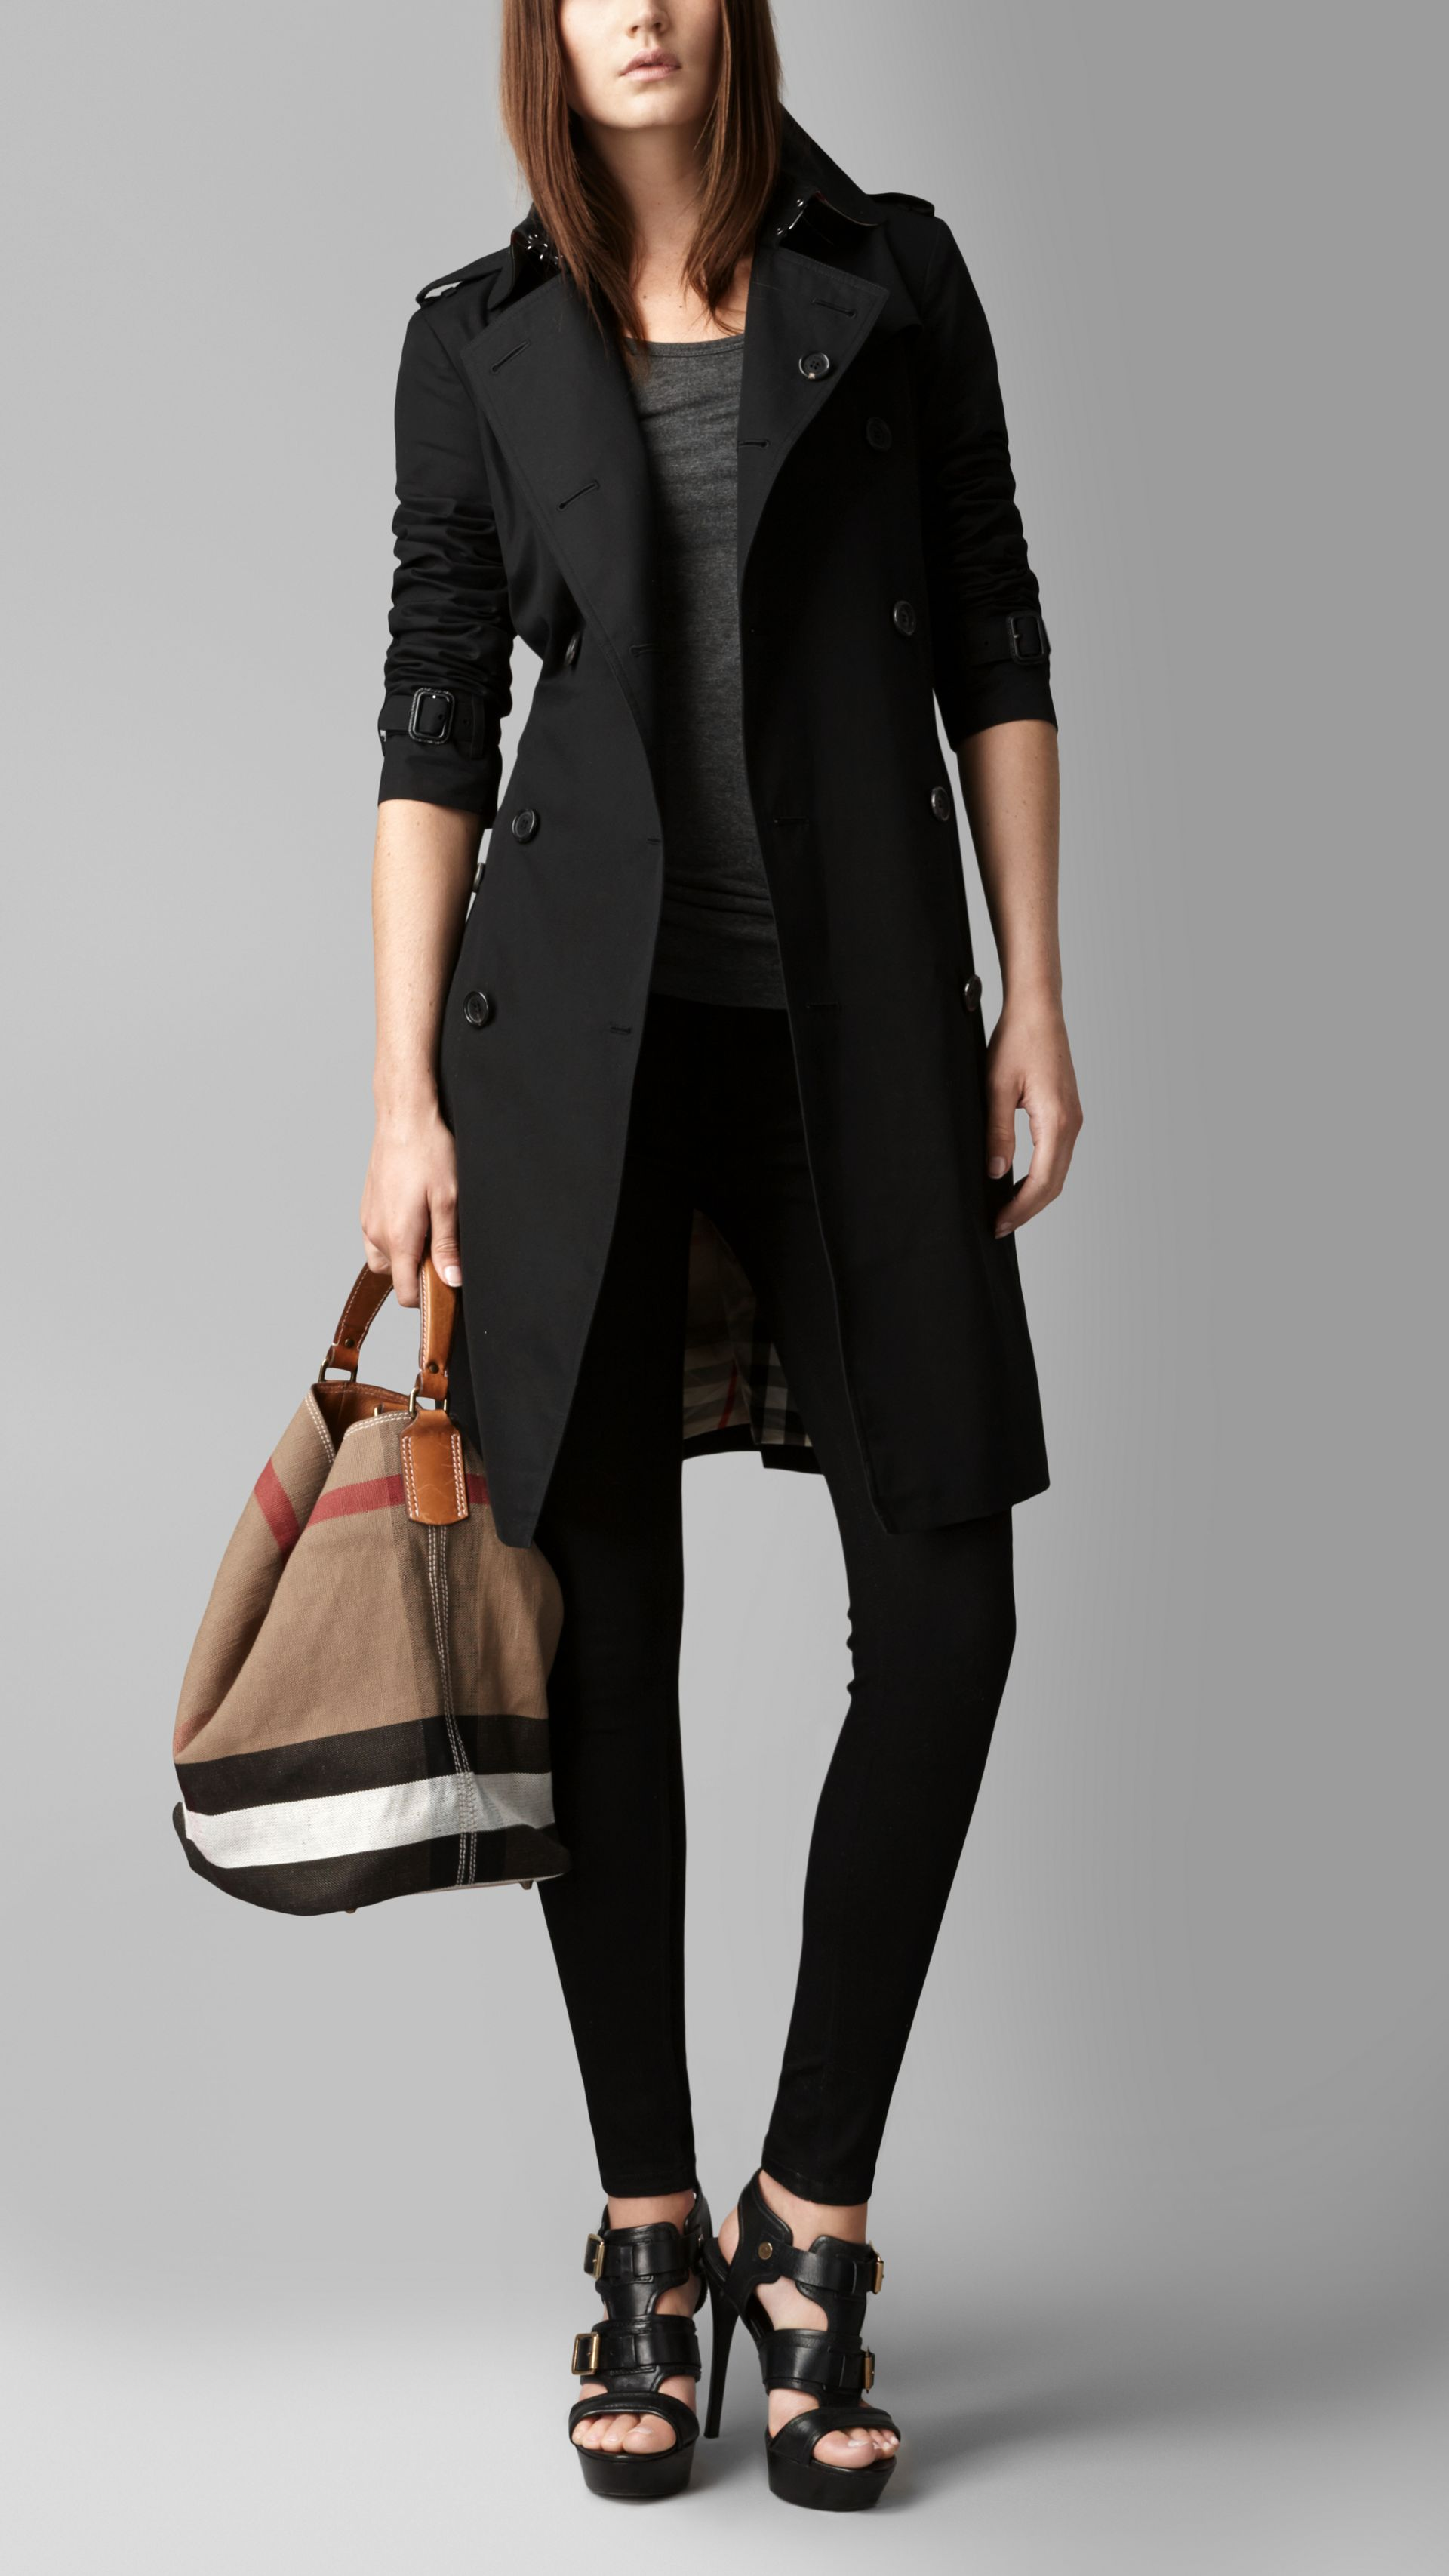 Medium Canvas Check Hobo Bag in Black - Women | Burberry - gallery image 7